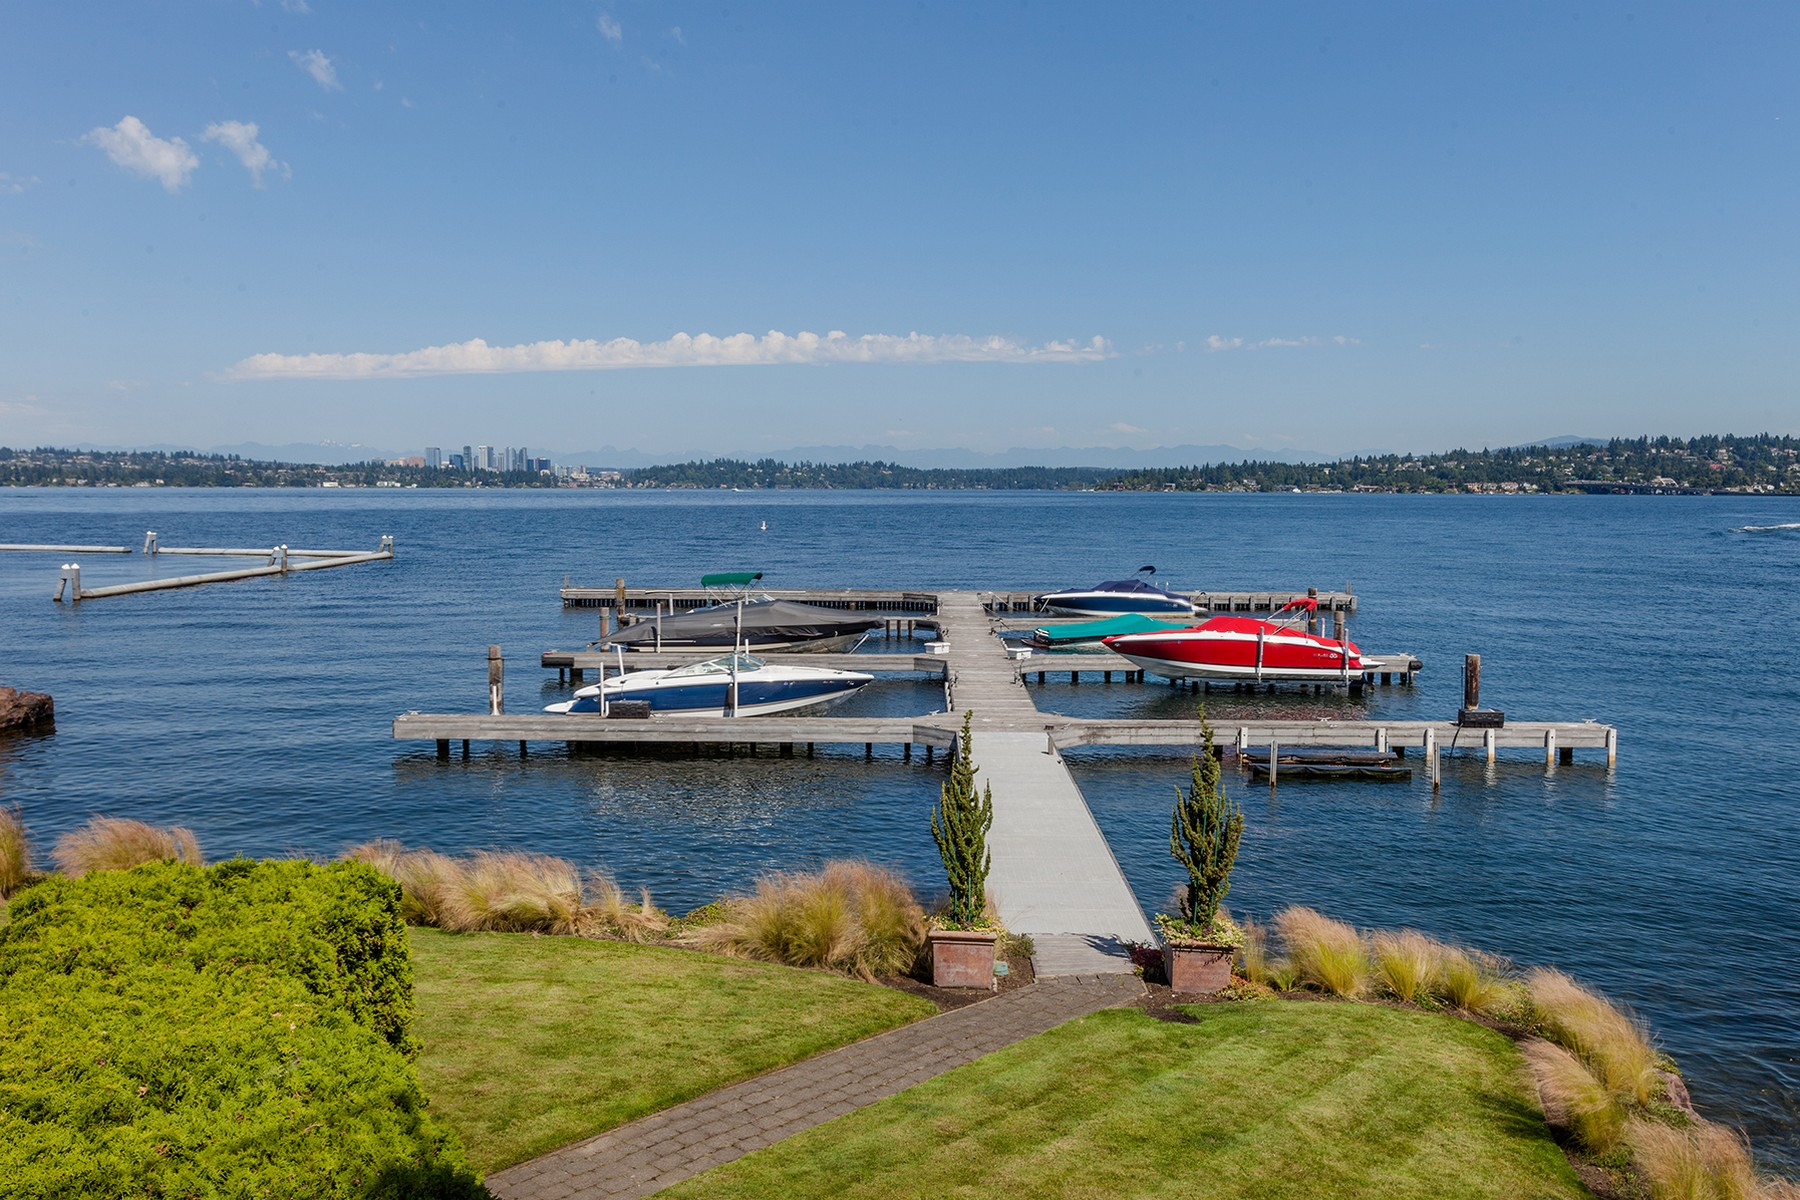 Condominium for Sale at Seattle Waterfront Condo Residence 302 Lakeside Ave S #101 Seattle, Washington 98112 United States